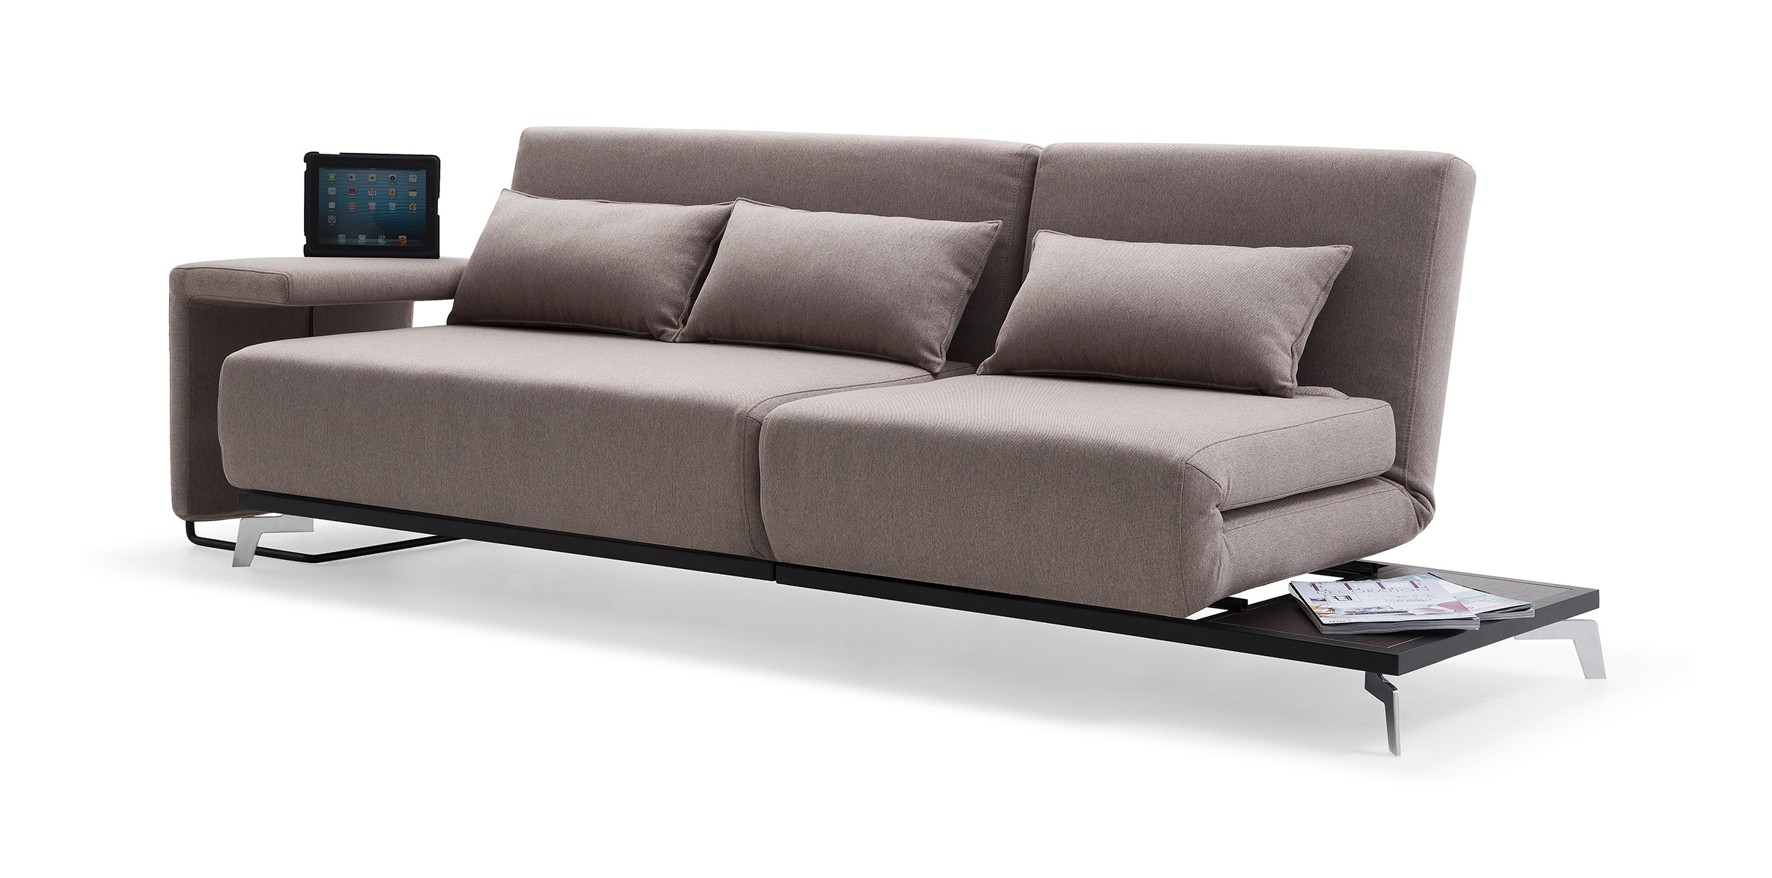 modern sofa beds new modern sofa bed 28 sofas and couches ideas with modern sofa bed VBBDDAN